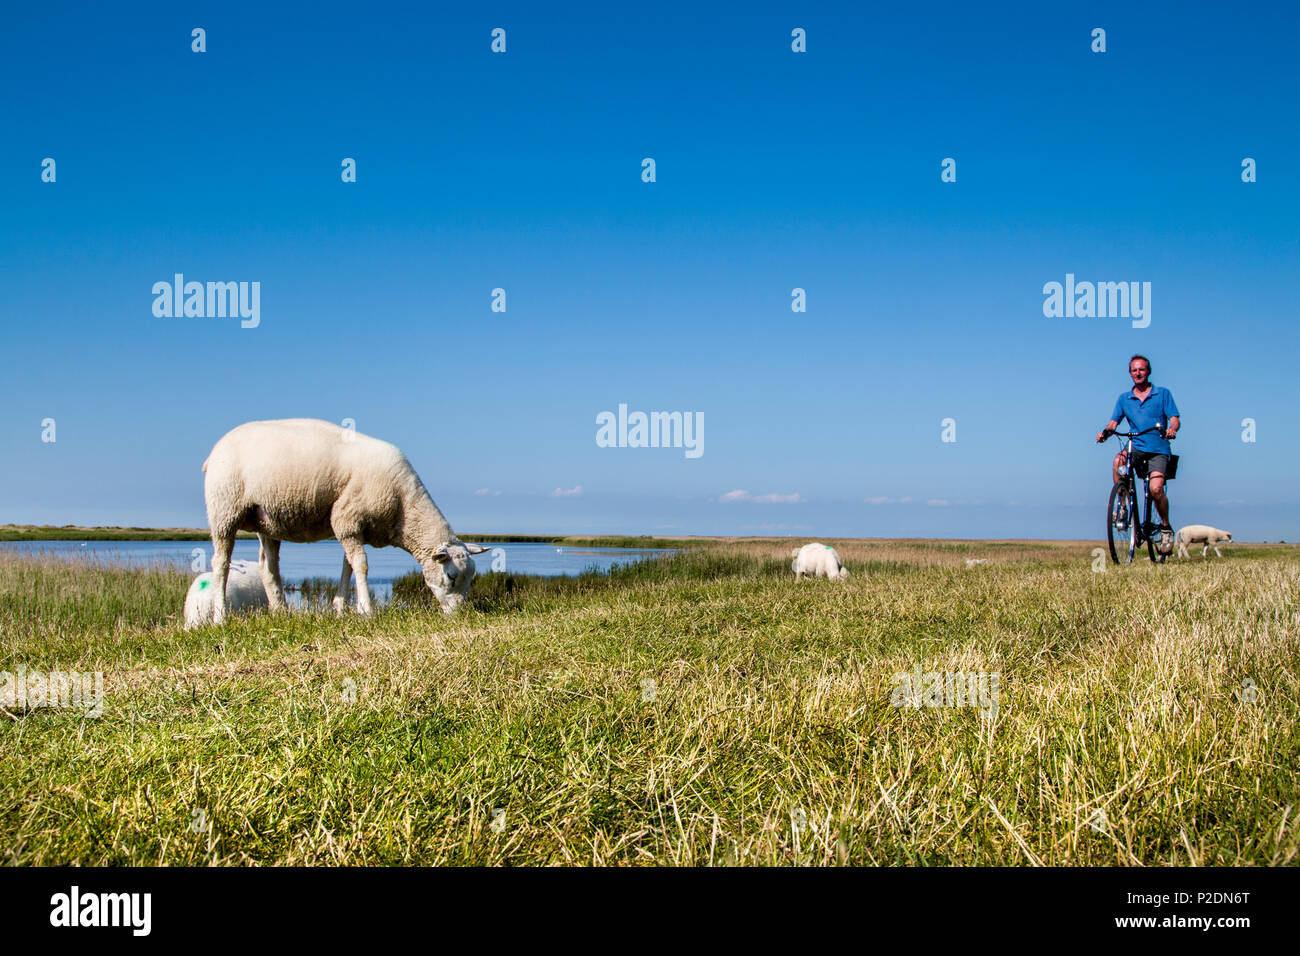 Cyclist and sheep on a dike, Westermarkelsdorf, Fehmarn island, Baltic Coast, Schleswig-Holstein, Germany - Stock Image